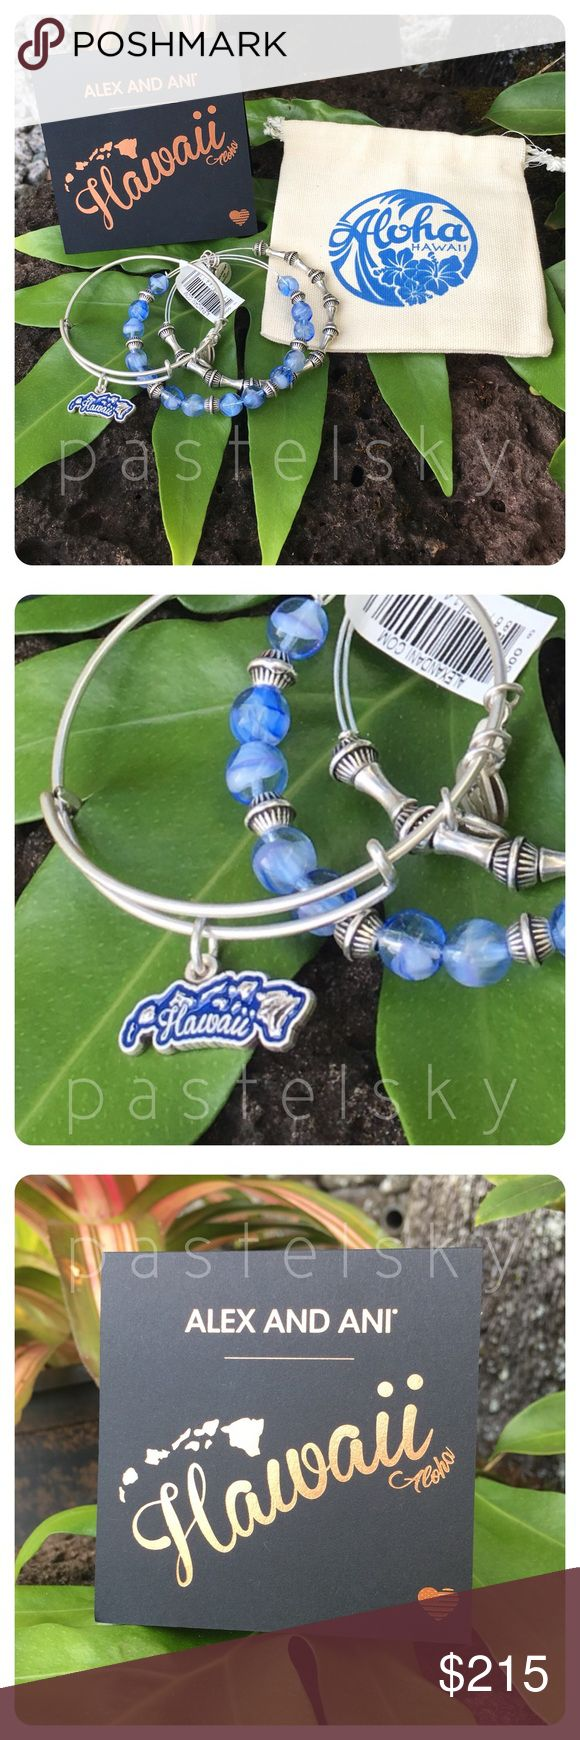 ALEX & ANI Hawaiian Islands bangle set limited LIMITED EDITION  EXCLUSIVELY sold in Hawaii! bundle unavailable online or in continental US stores. the PERFECT gift for yourself or fellow alex and ani collector!  purchase includes ・3 silver bracelets ・card ・aloha jewelry bag ・retail shopping bag ・tissue paper  due to lighting- color of item may vary slightly from photos.  please don't hesitate to ask questions    price firm - item is excluded from bundle discount   i do not trade or take…